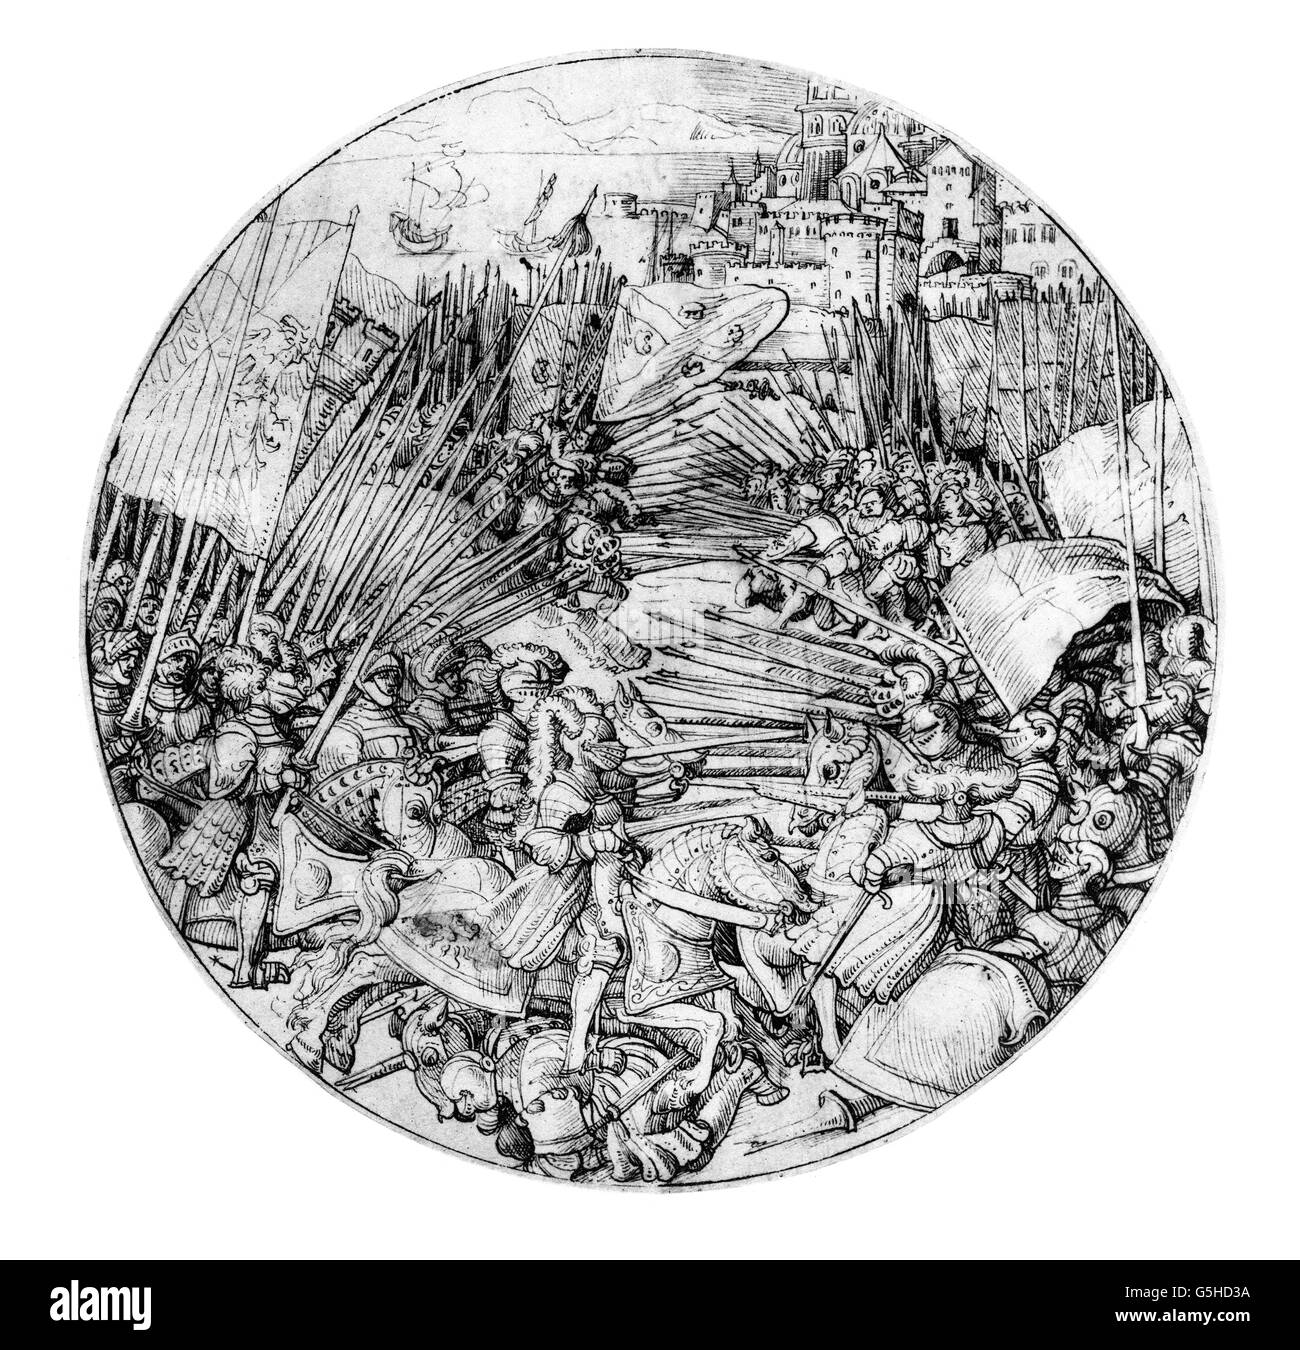 military, knights, two armies, consisting of knights and landsknechts, attacking each other, in the background a - Stock Image